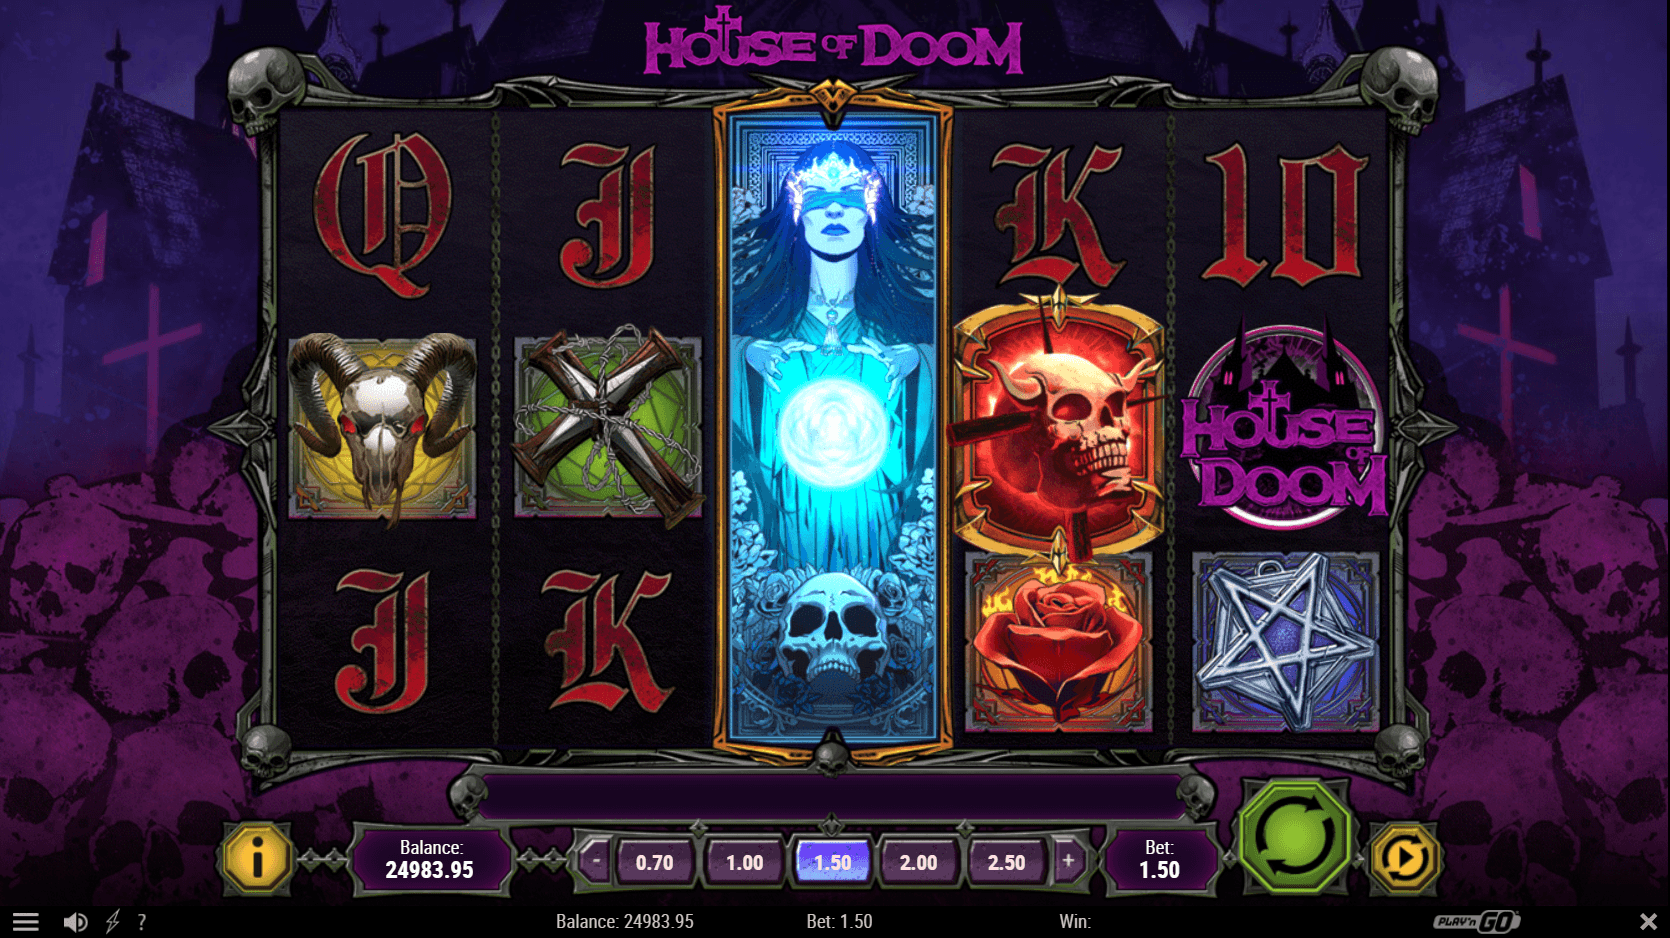 House of Doom powered by Play'n GO This Halloween-themed slot game